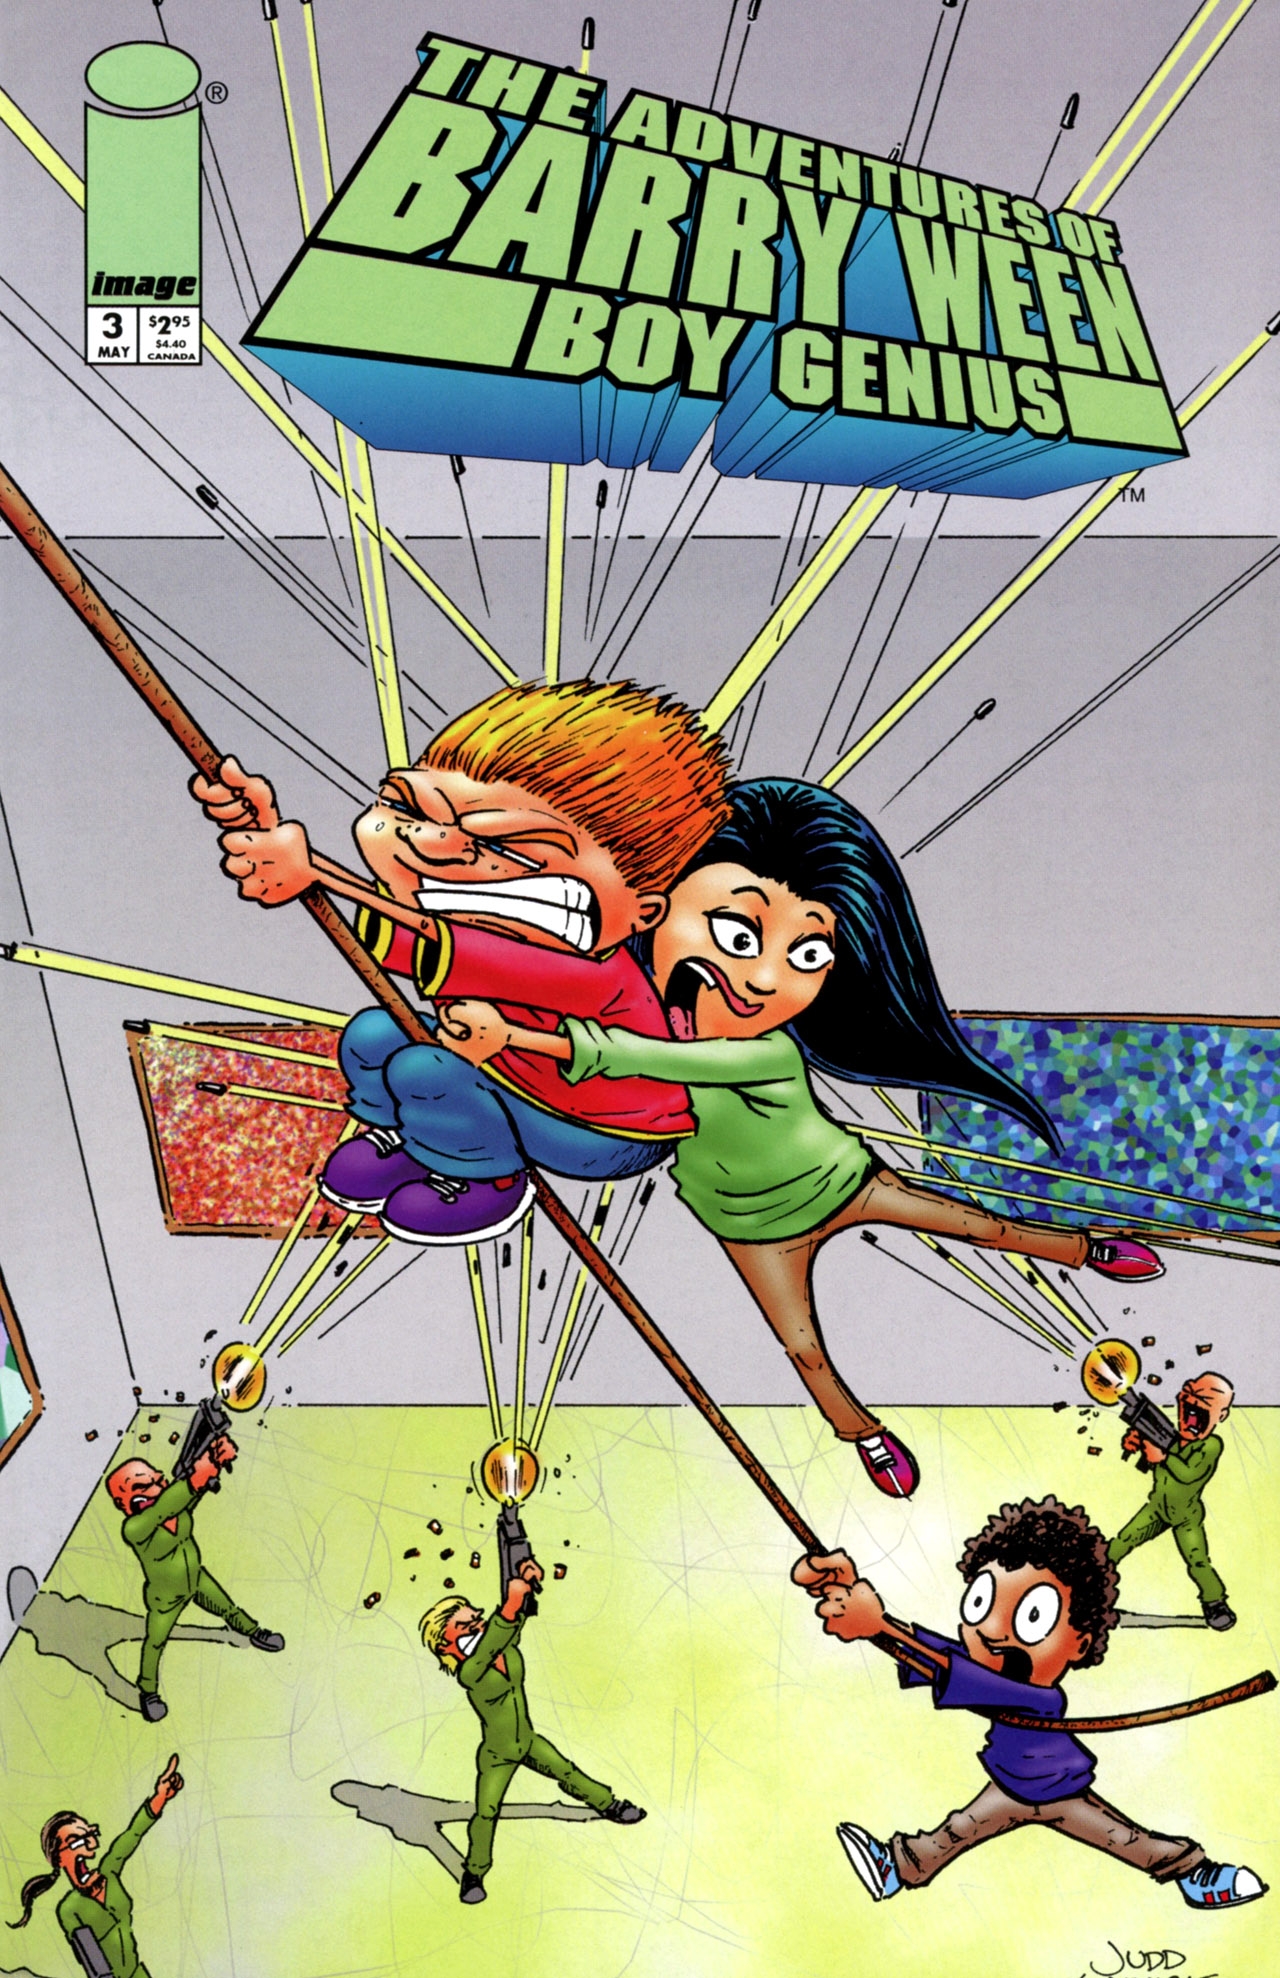 CDC #18 The Adventures of Barry Ween, Boy Genius Judd Winick